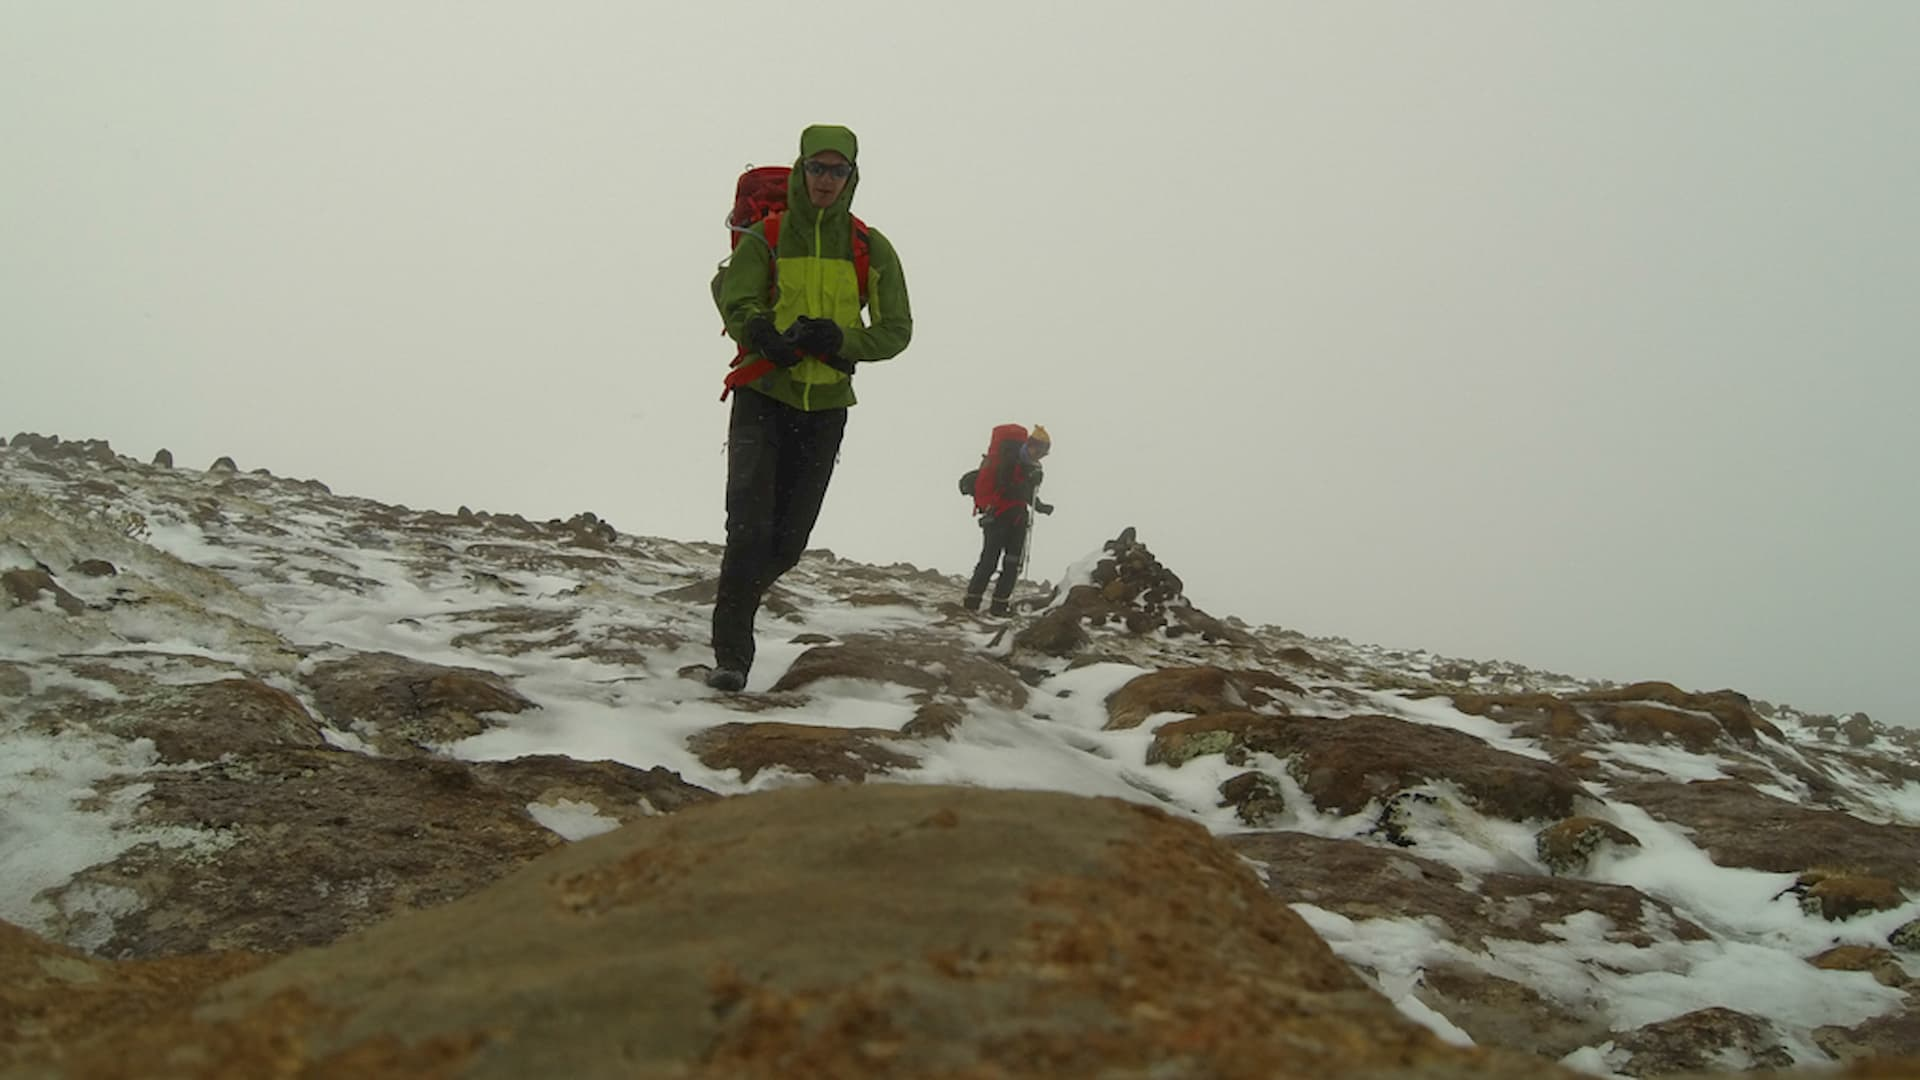 Combined Winter & Summer  Hiking Skills Course - 4 days